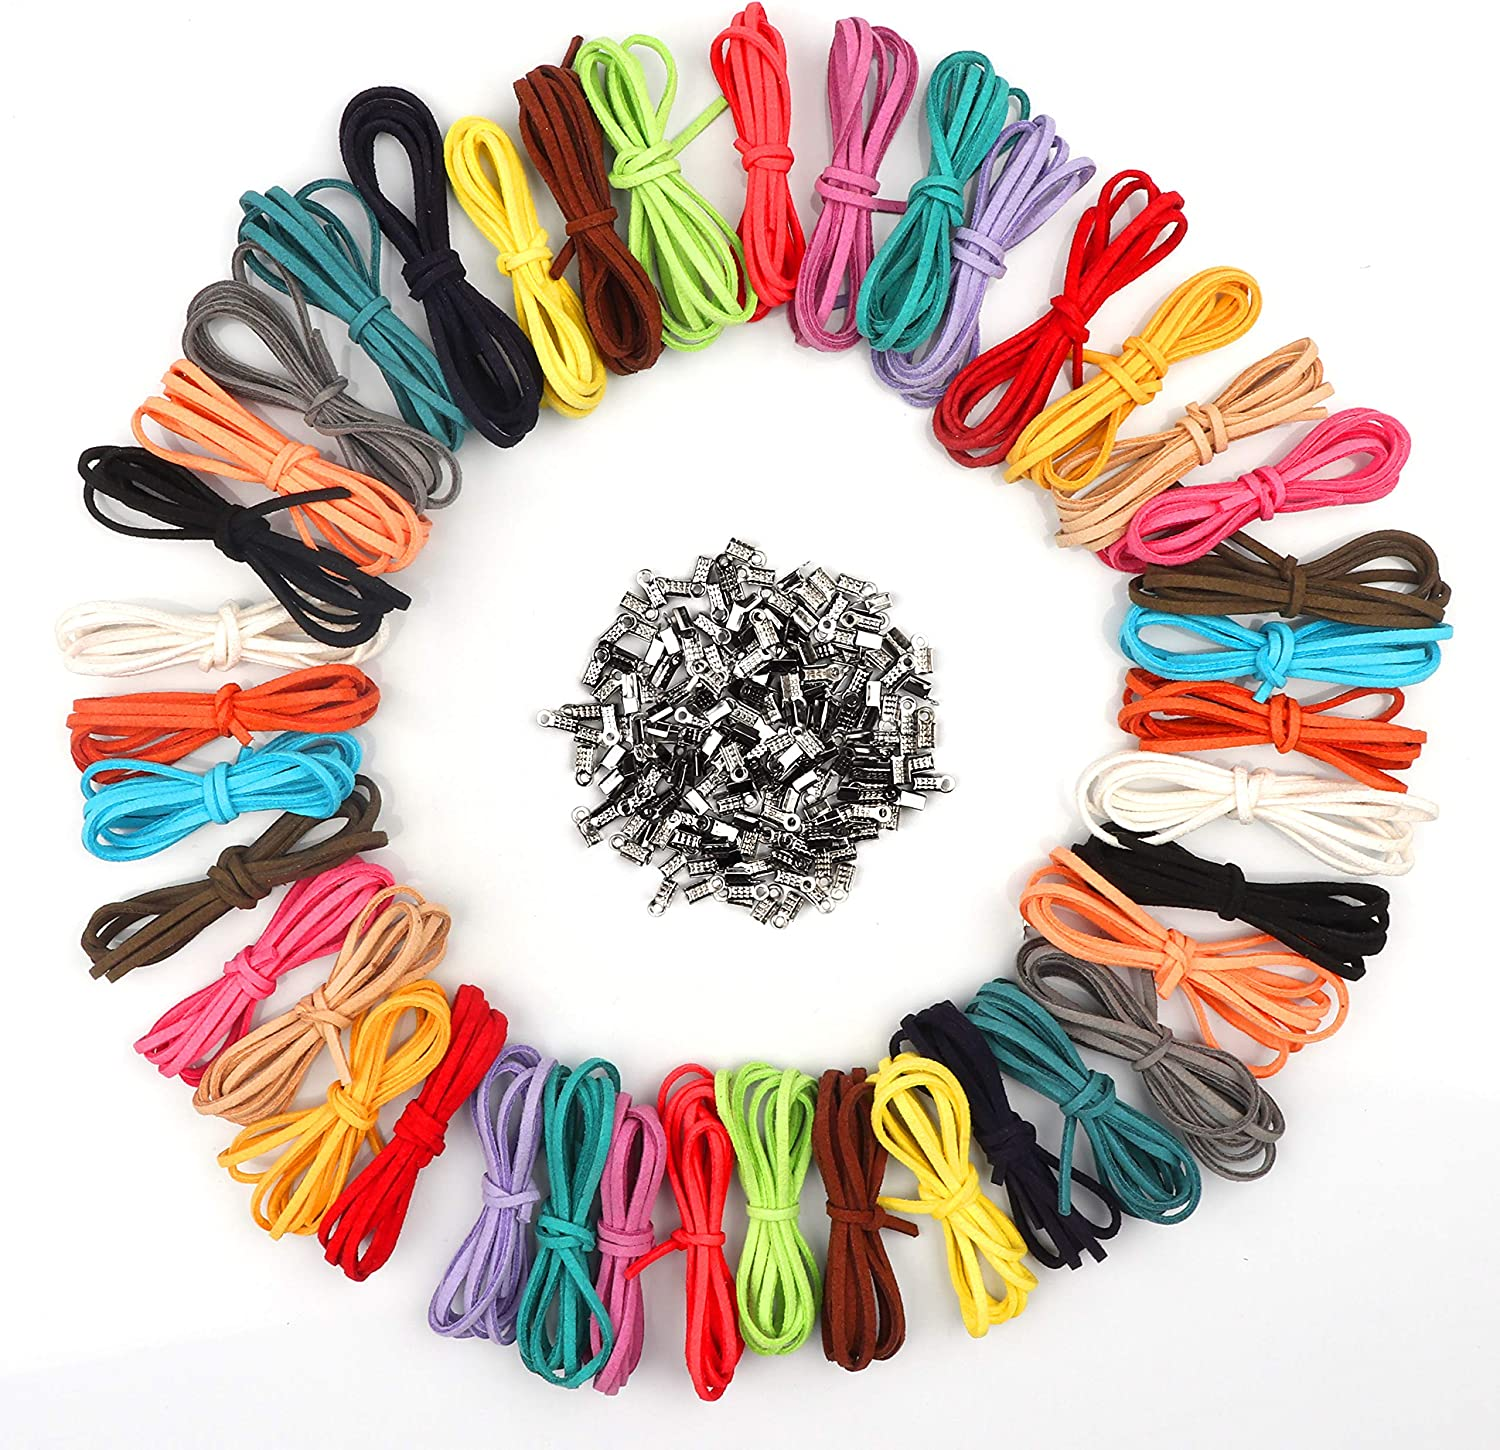 Curtzy 40 Pieces 1m x 3mm Leather Cord Suede String with 200 Pieces Cord Ends For Bracelet, Necklace, Key Rings, Jewellery, and Gift Making DIY Crafts